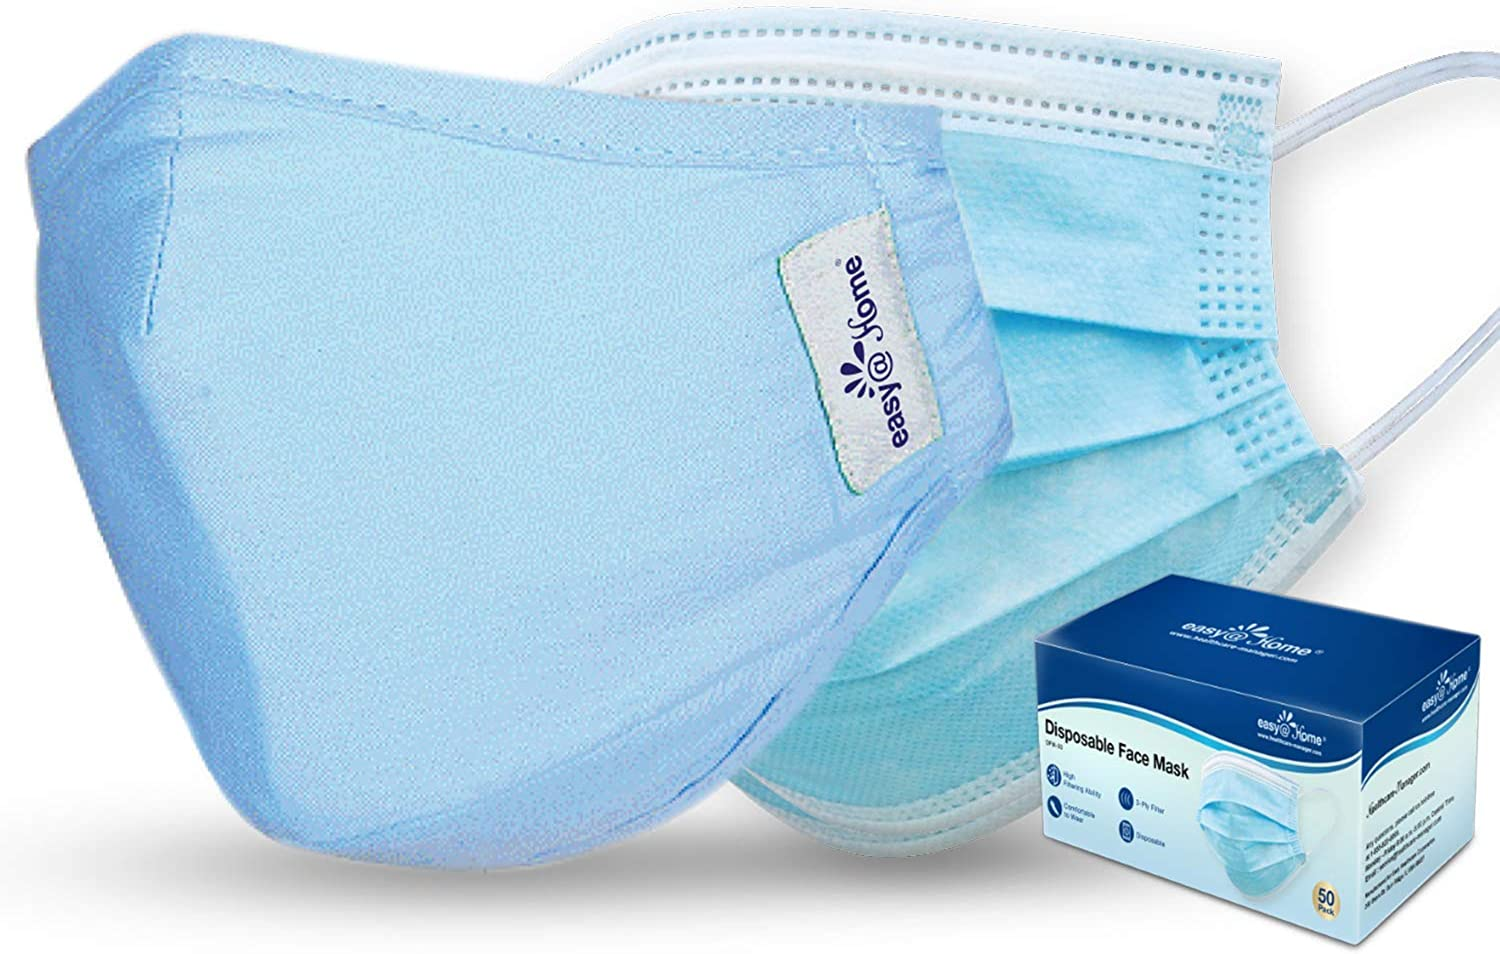 Easy@Home Washable and Reusable Cloth Mask with Filters and 50 Pack Disposable Face Masks